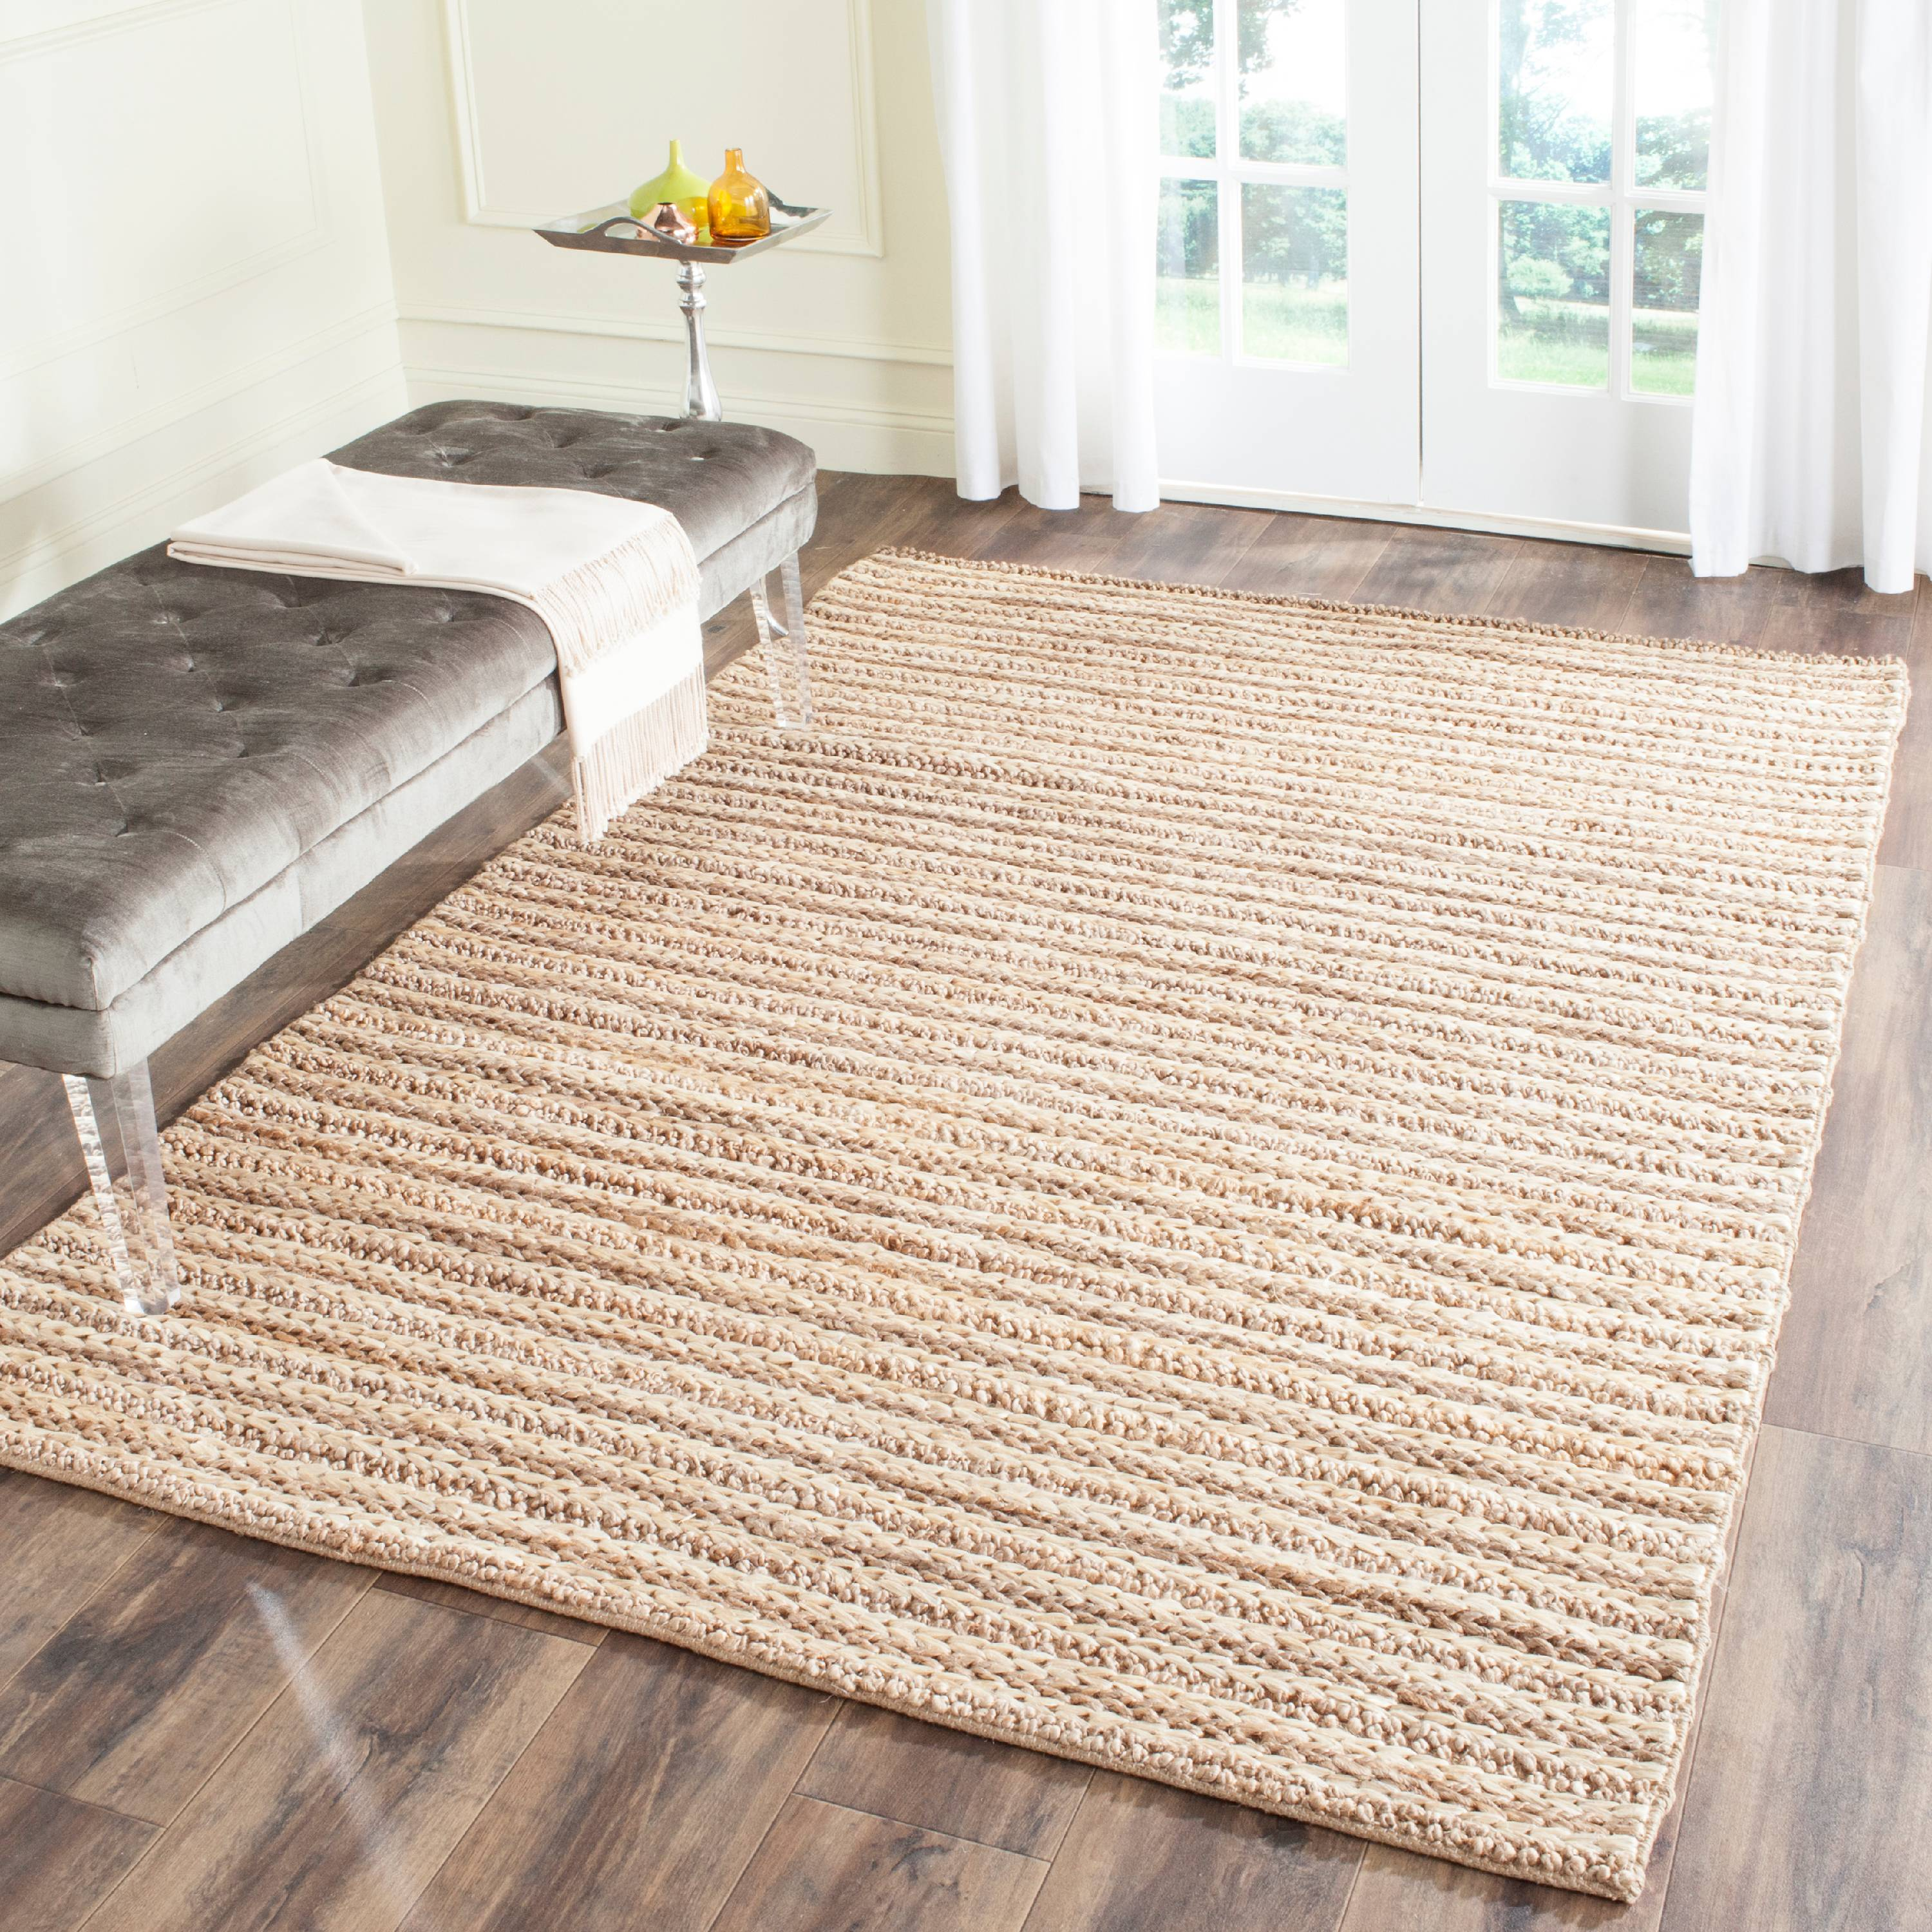 Safavieh Natural Fiber Caymen Braided Area Rug